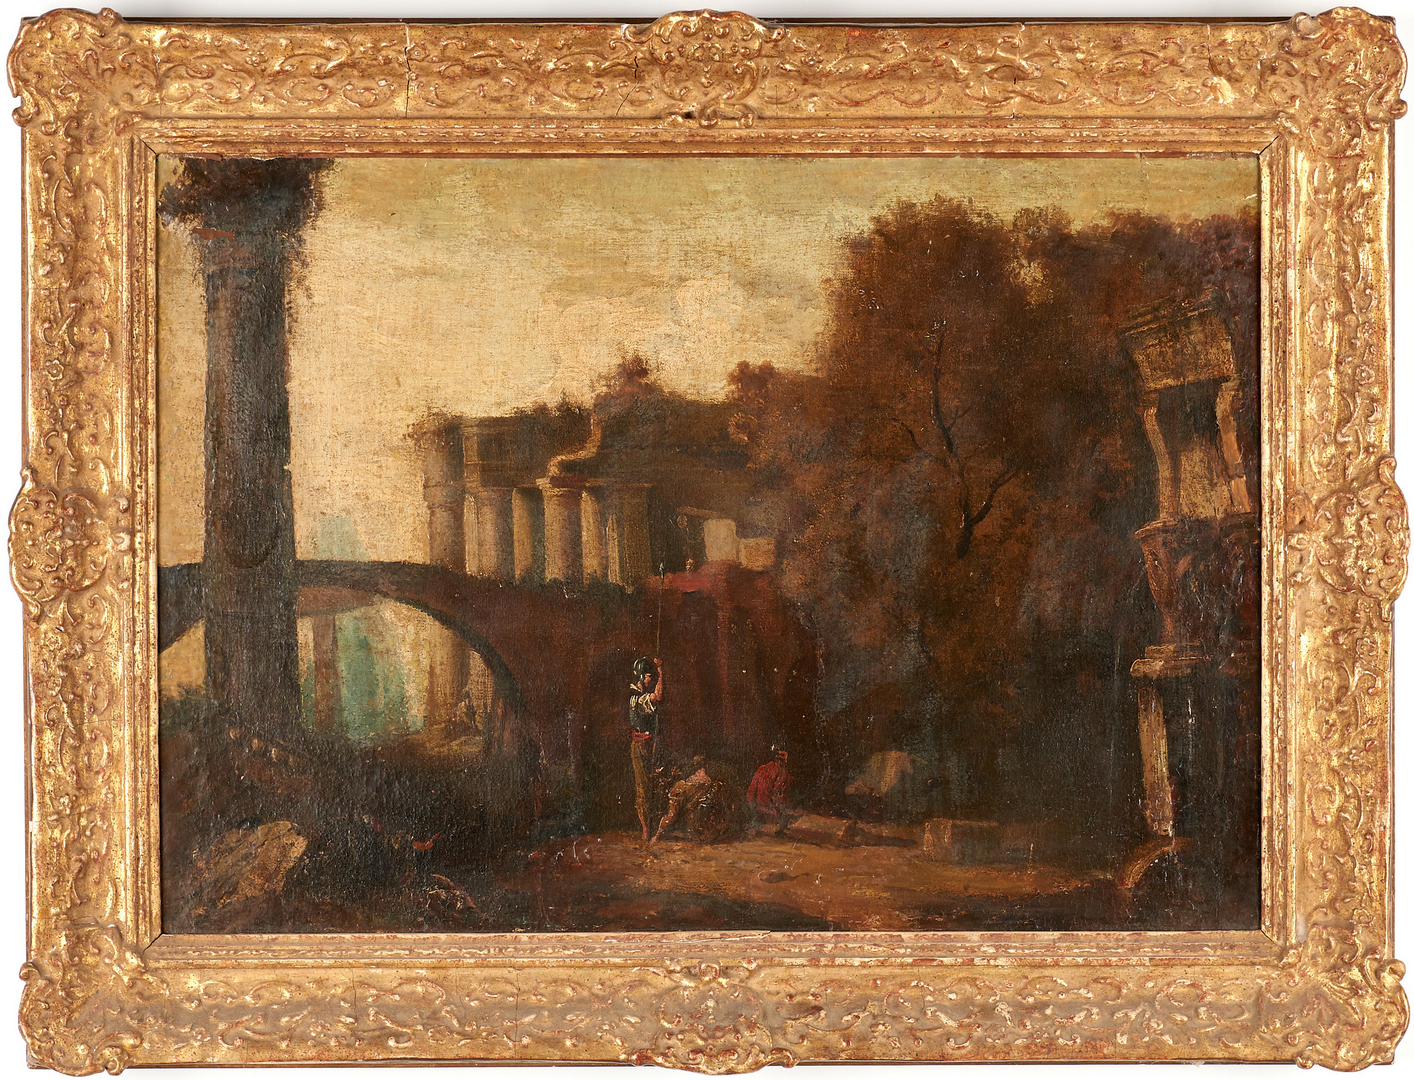 Lot 99: Style of Hubert Robert, 18th C. Landscape with Roman Ruins and 3 figures